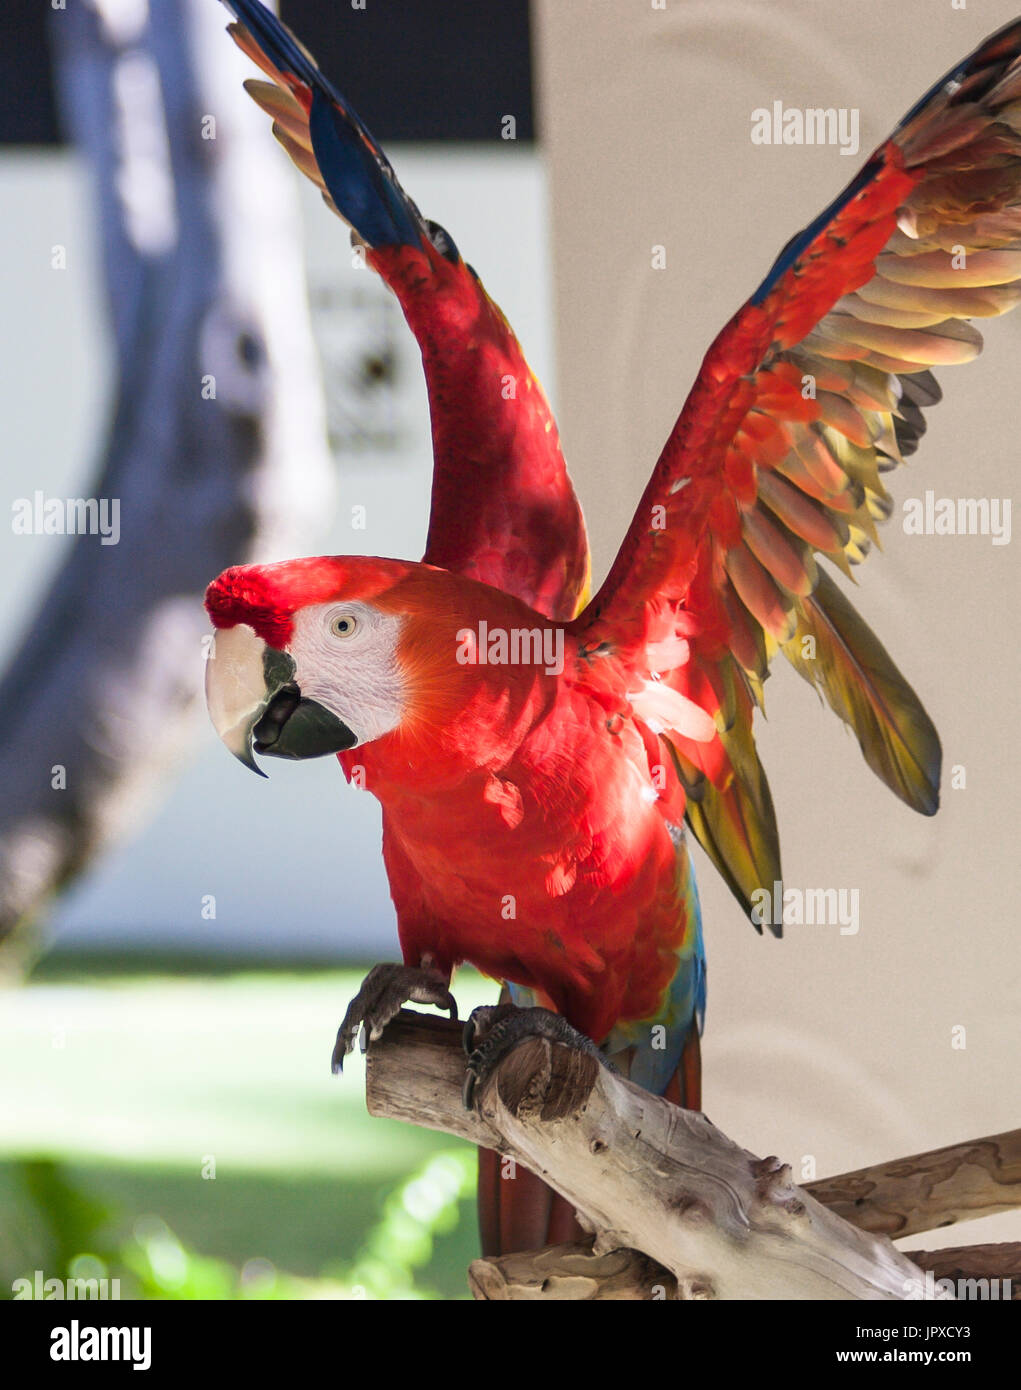 Macaw Parrot With Wings Extended - Stock Image